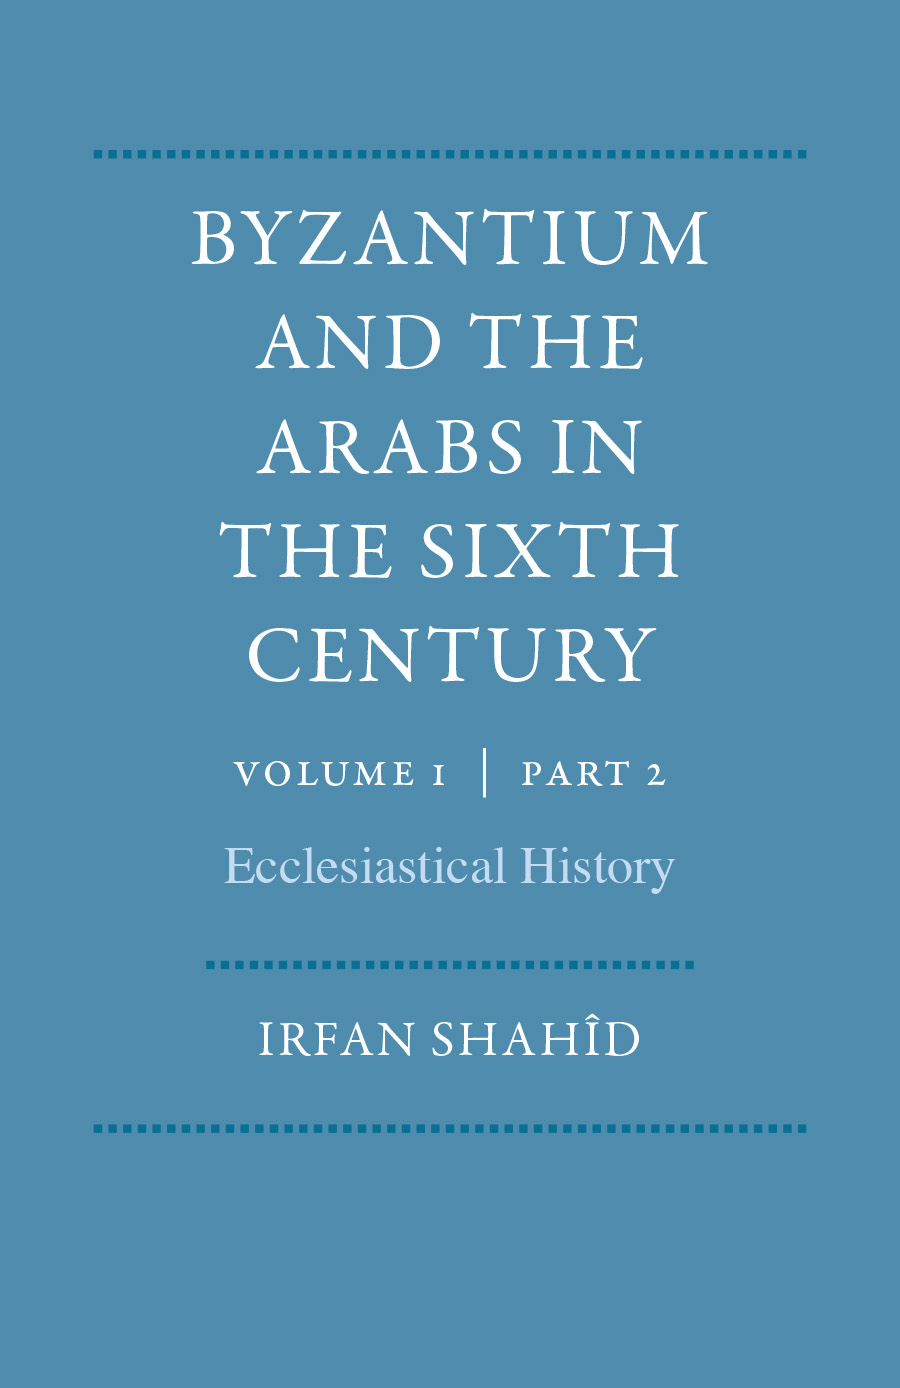 Byzantium and the Arabs in the Sixth Century